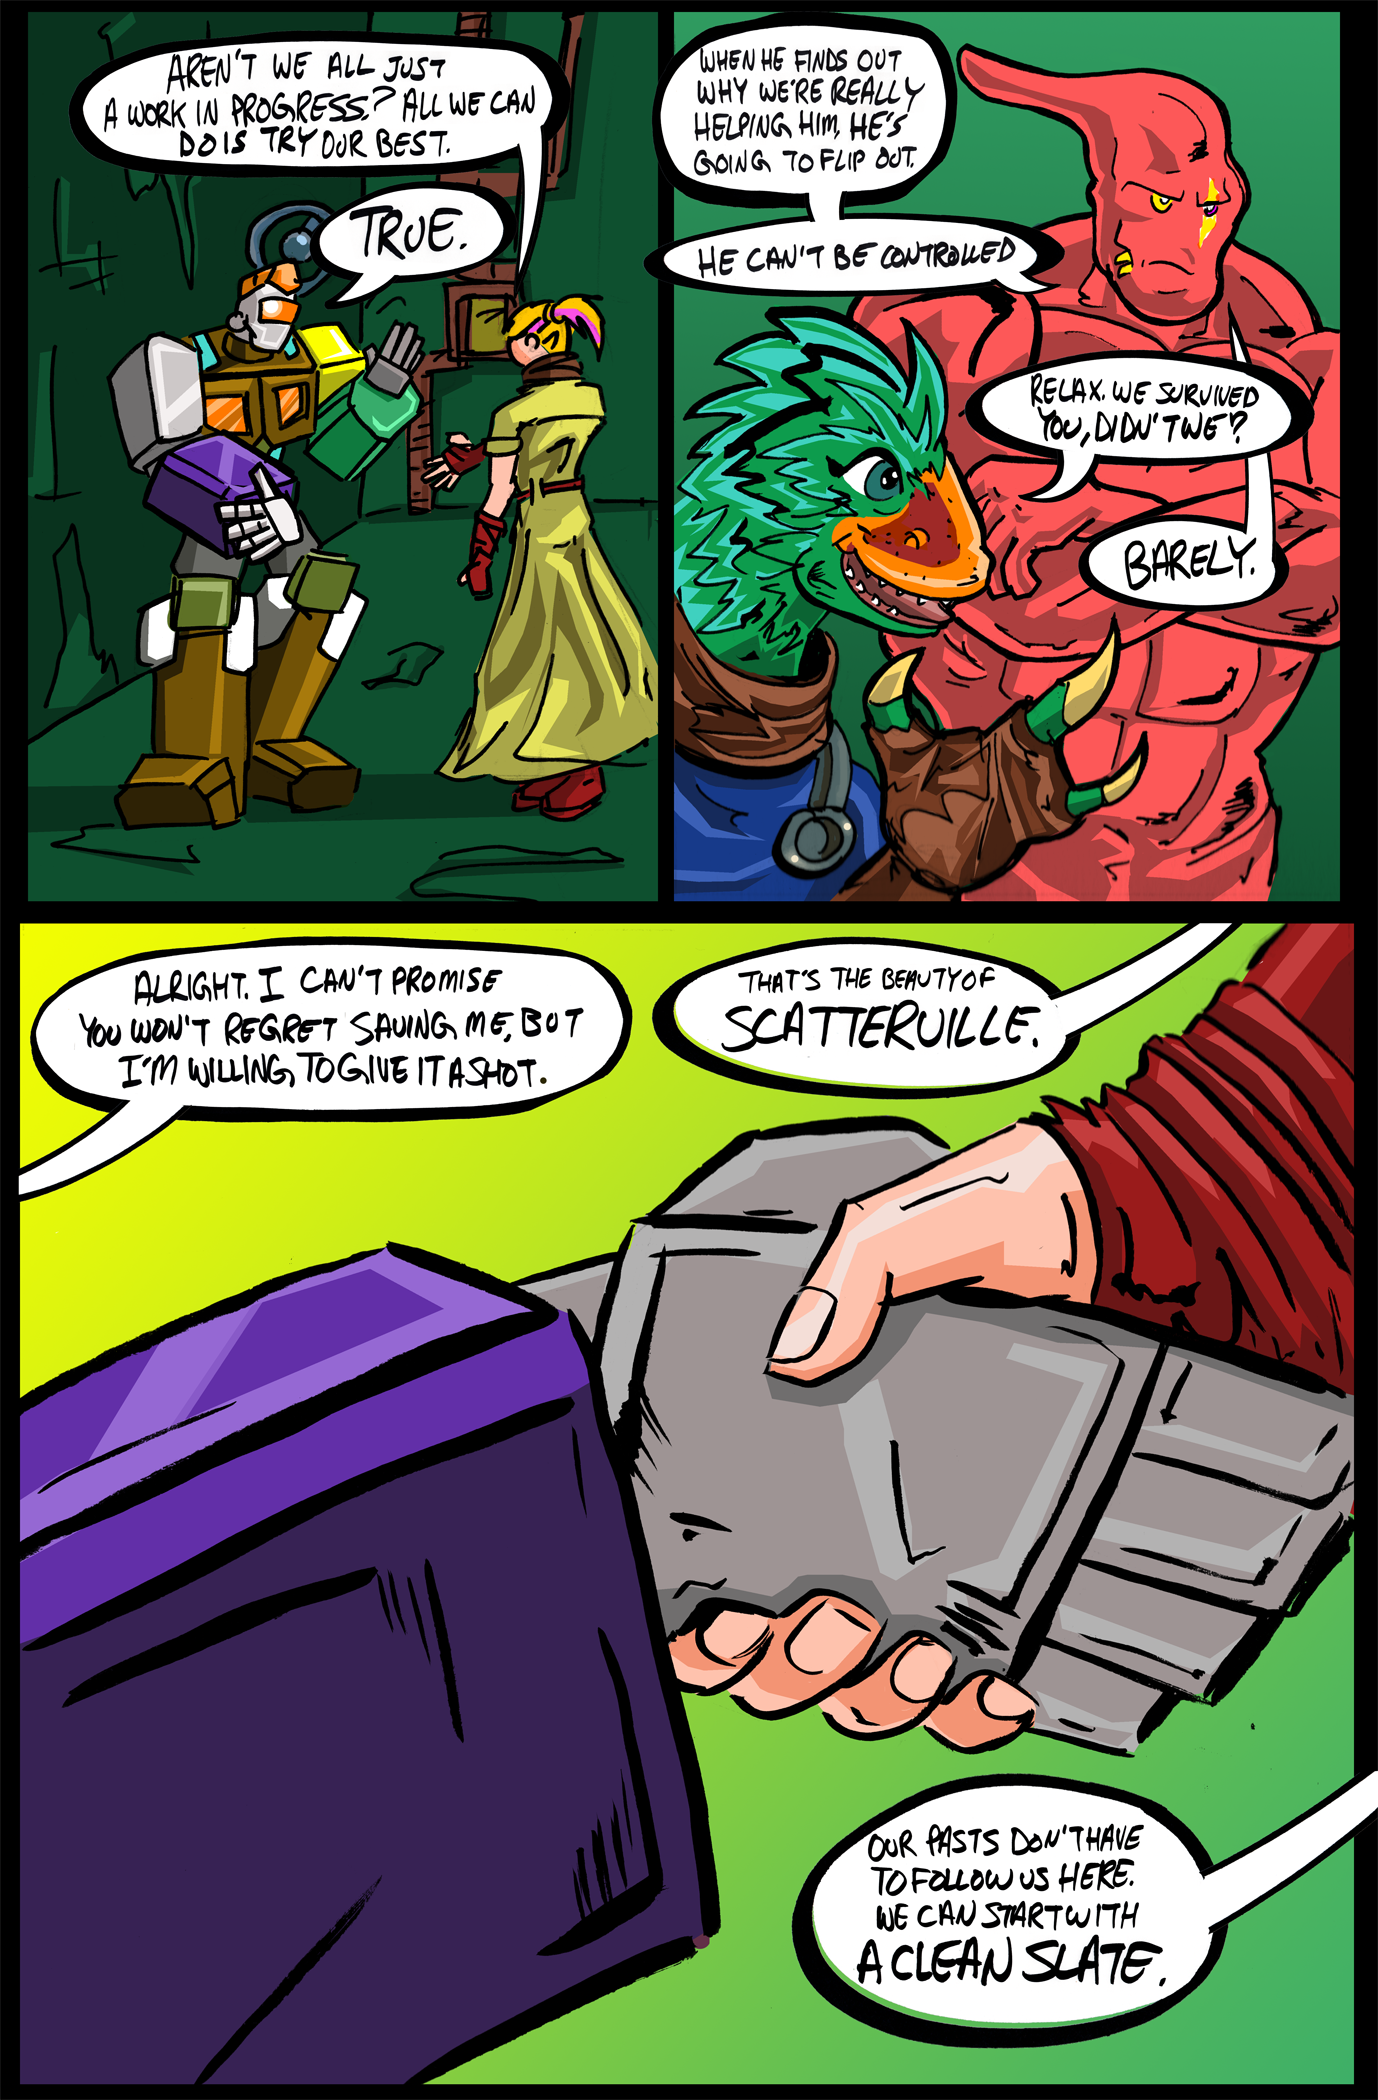 2018-04-26-nothing lasts forever